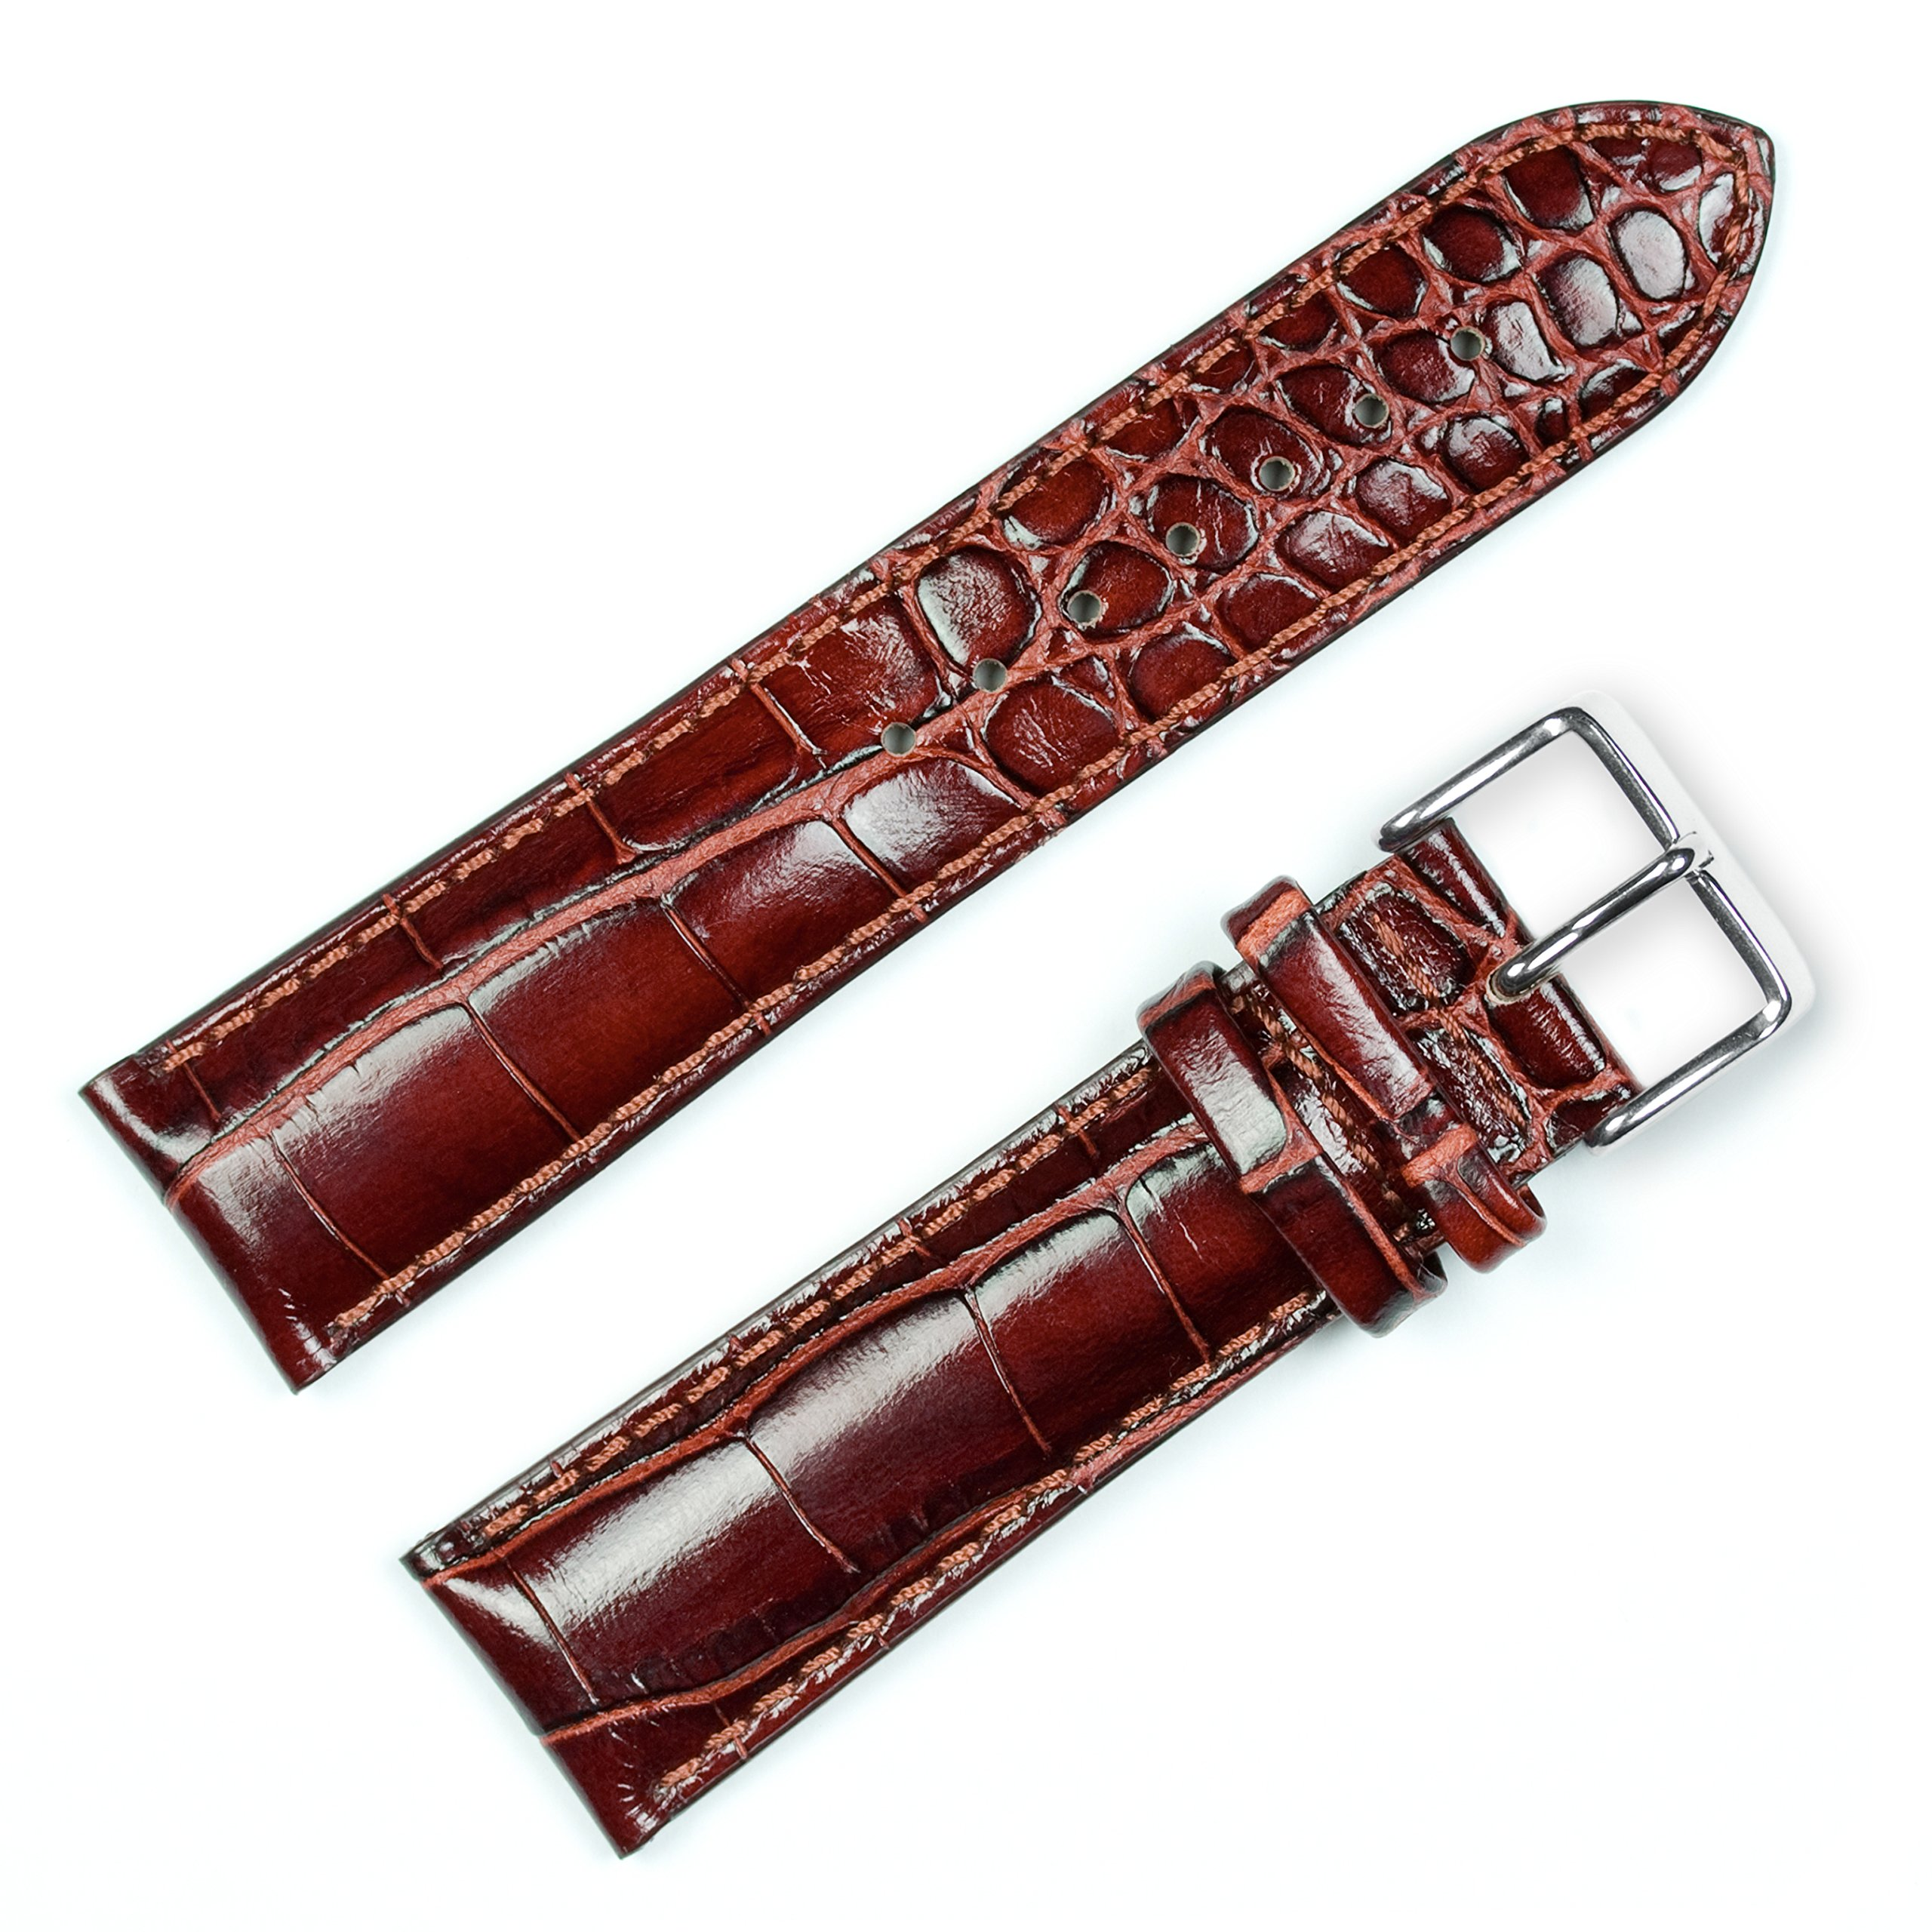 Crocodile Grain Watchband (Chrono) Havana 20mm Long Watch band - by deBeer